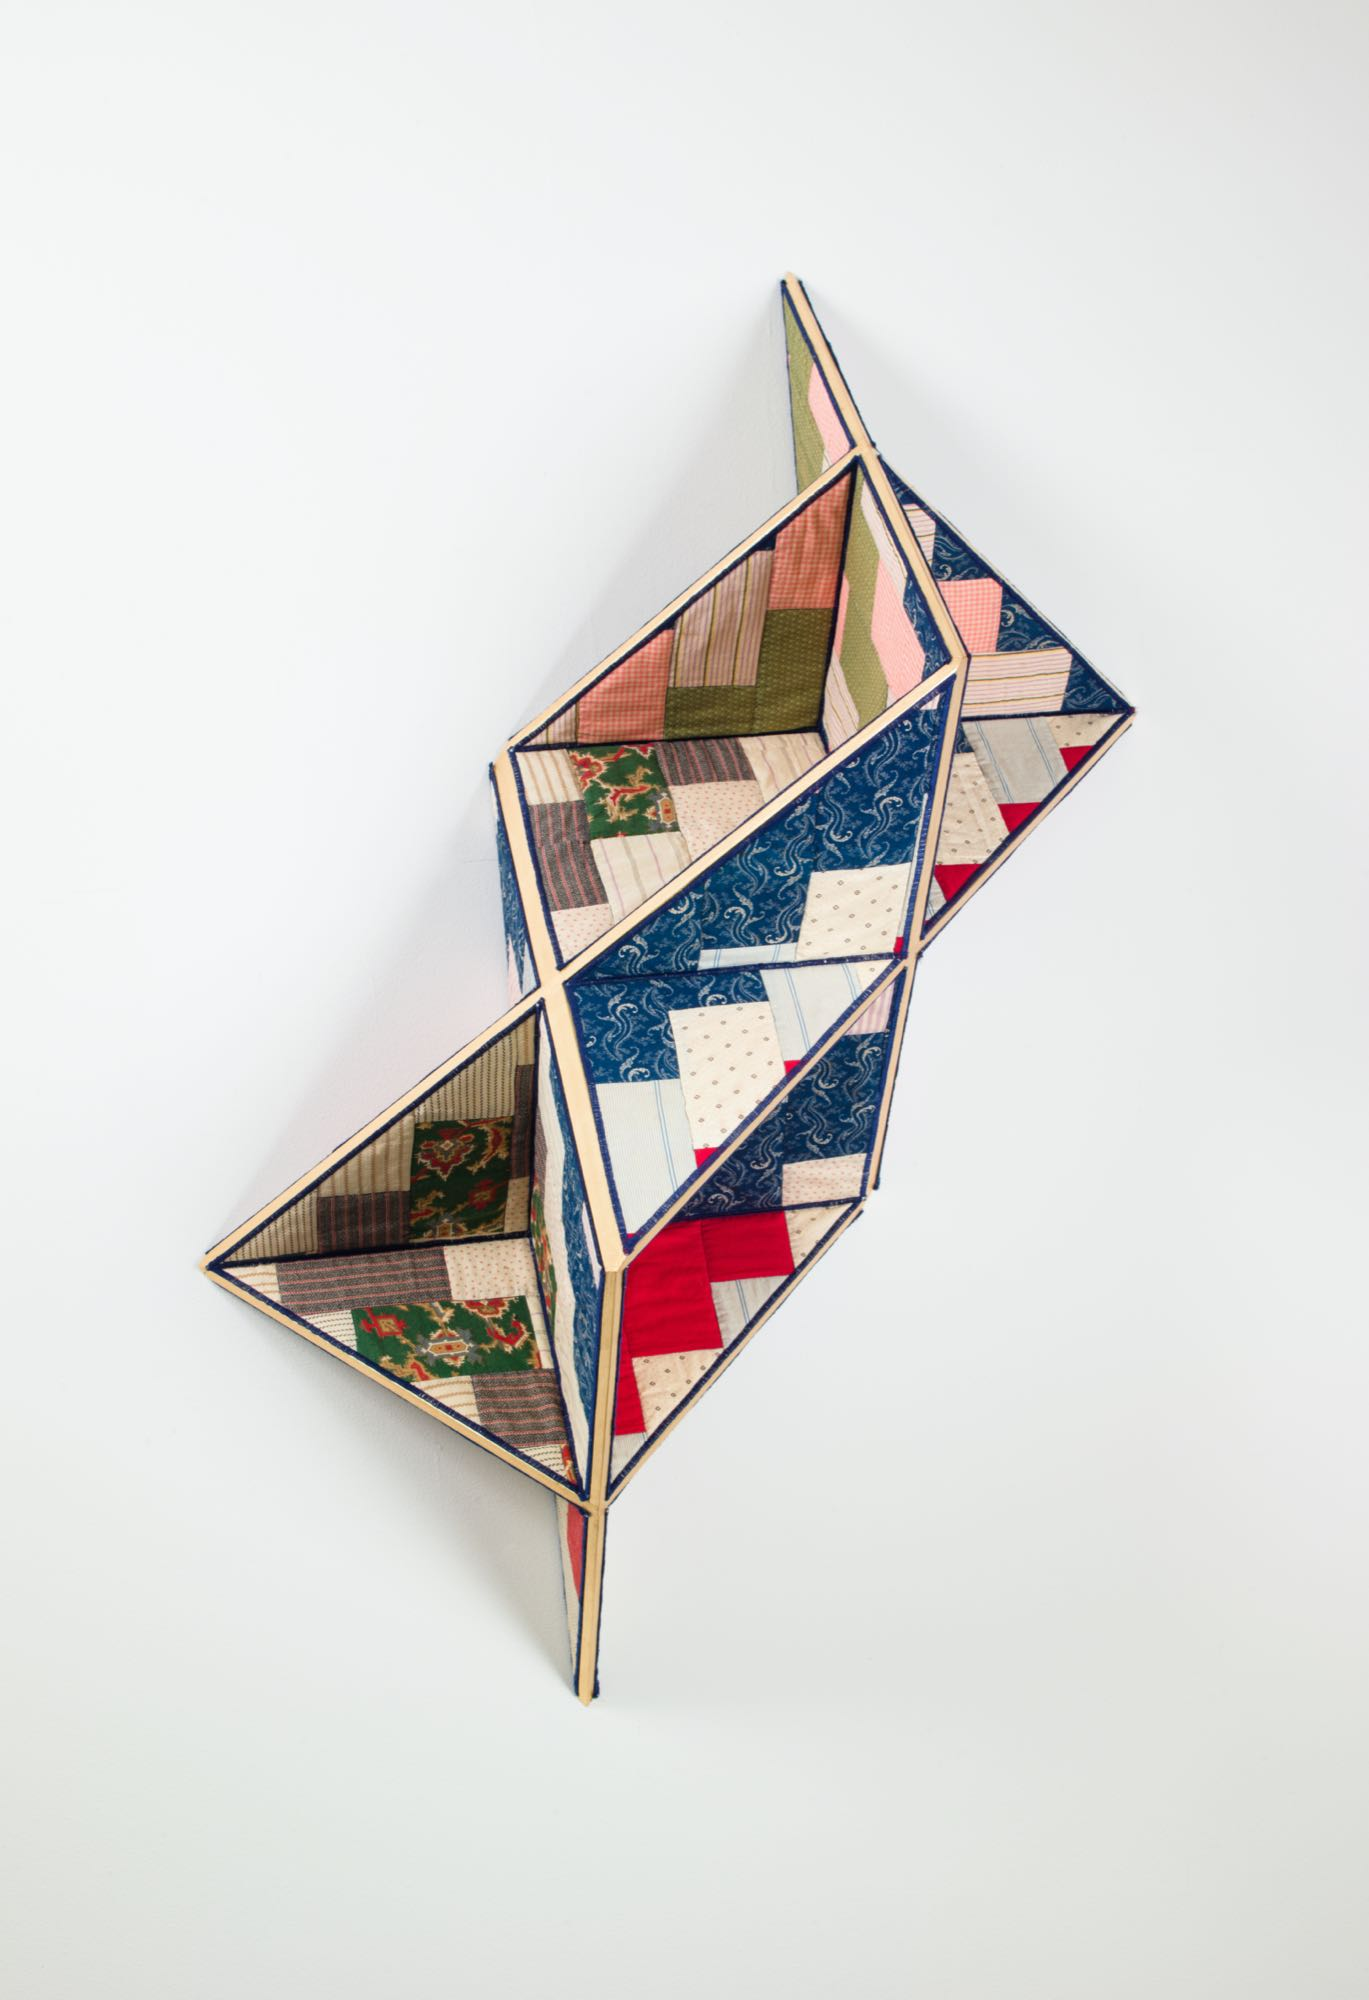 3D quilt by sanford biggers with square geometric shapes